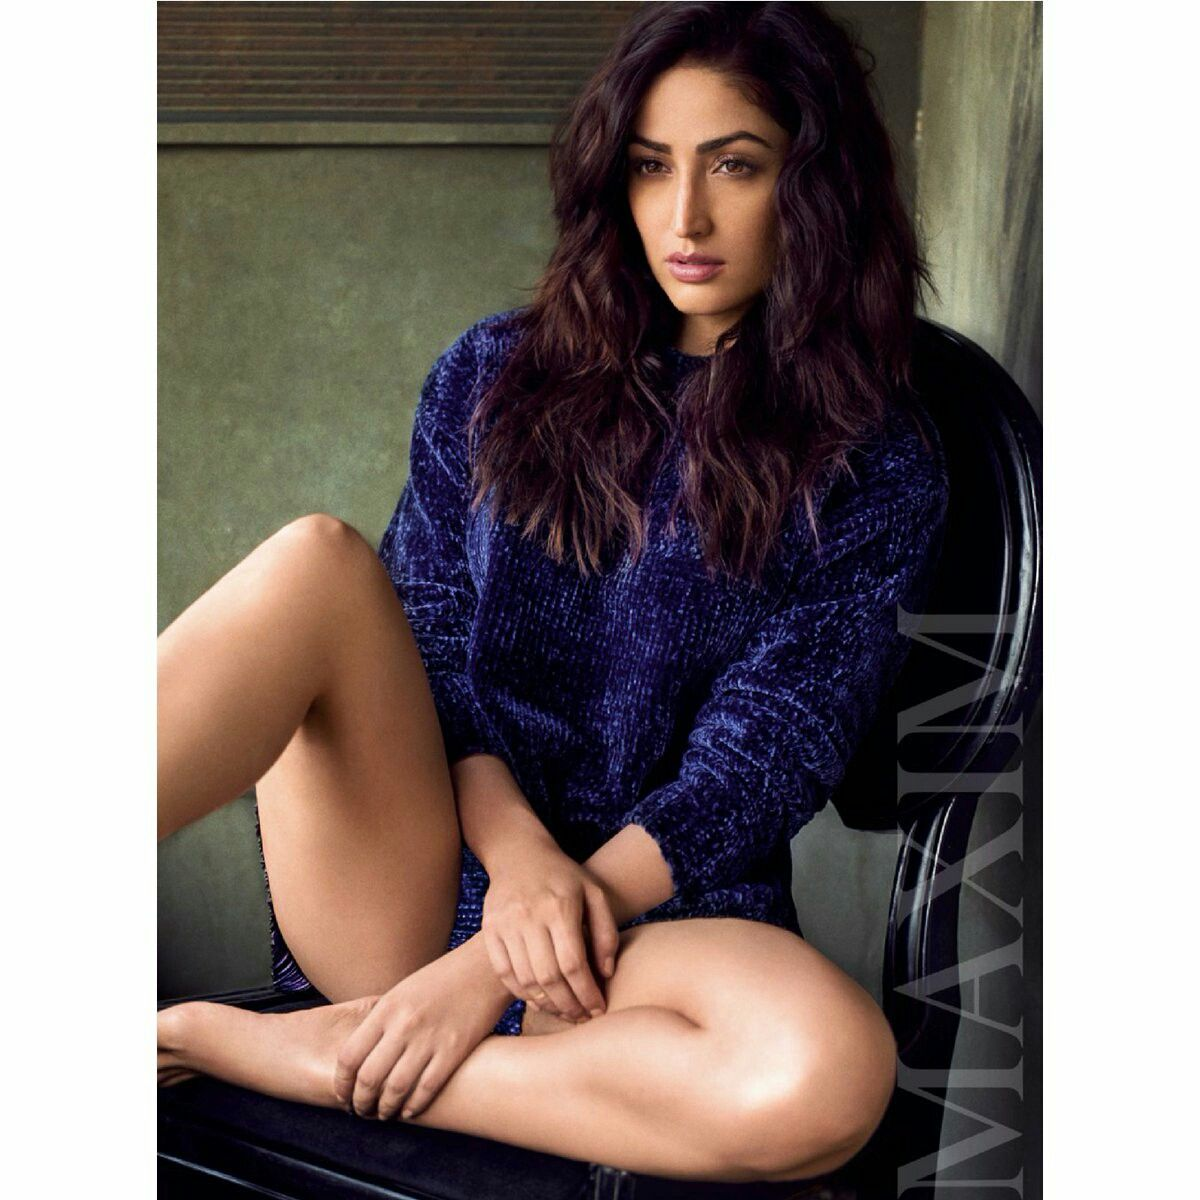 yami gautam for maxim india january issue 2018 #maximindia